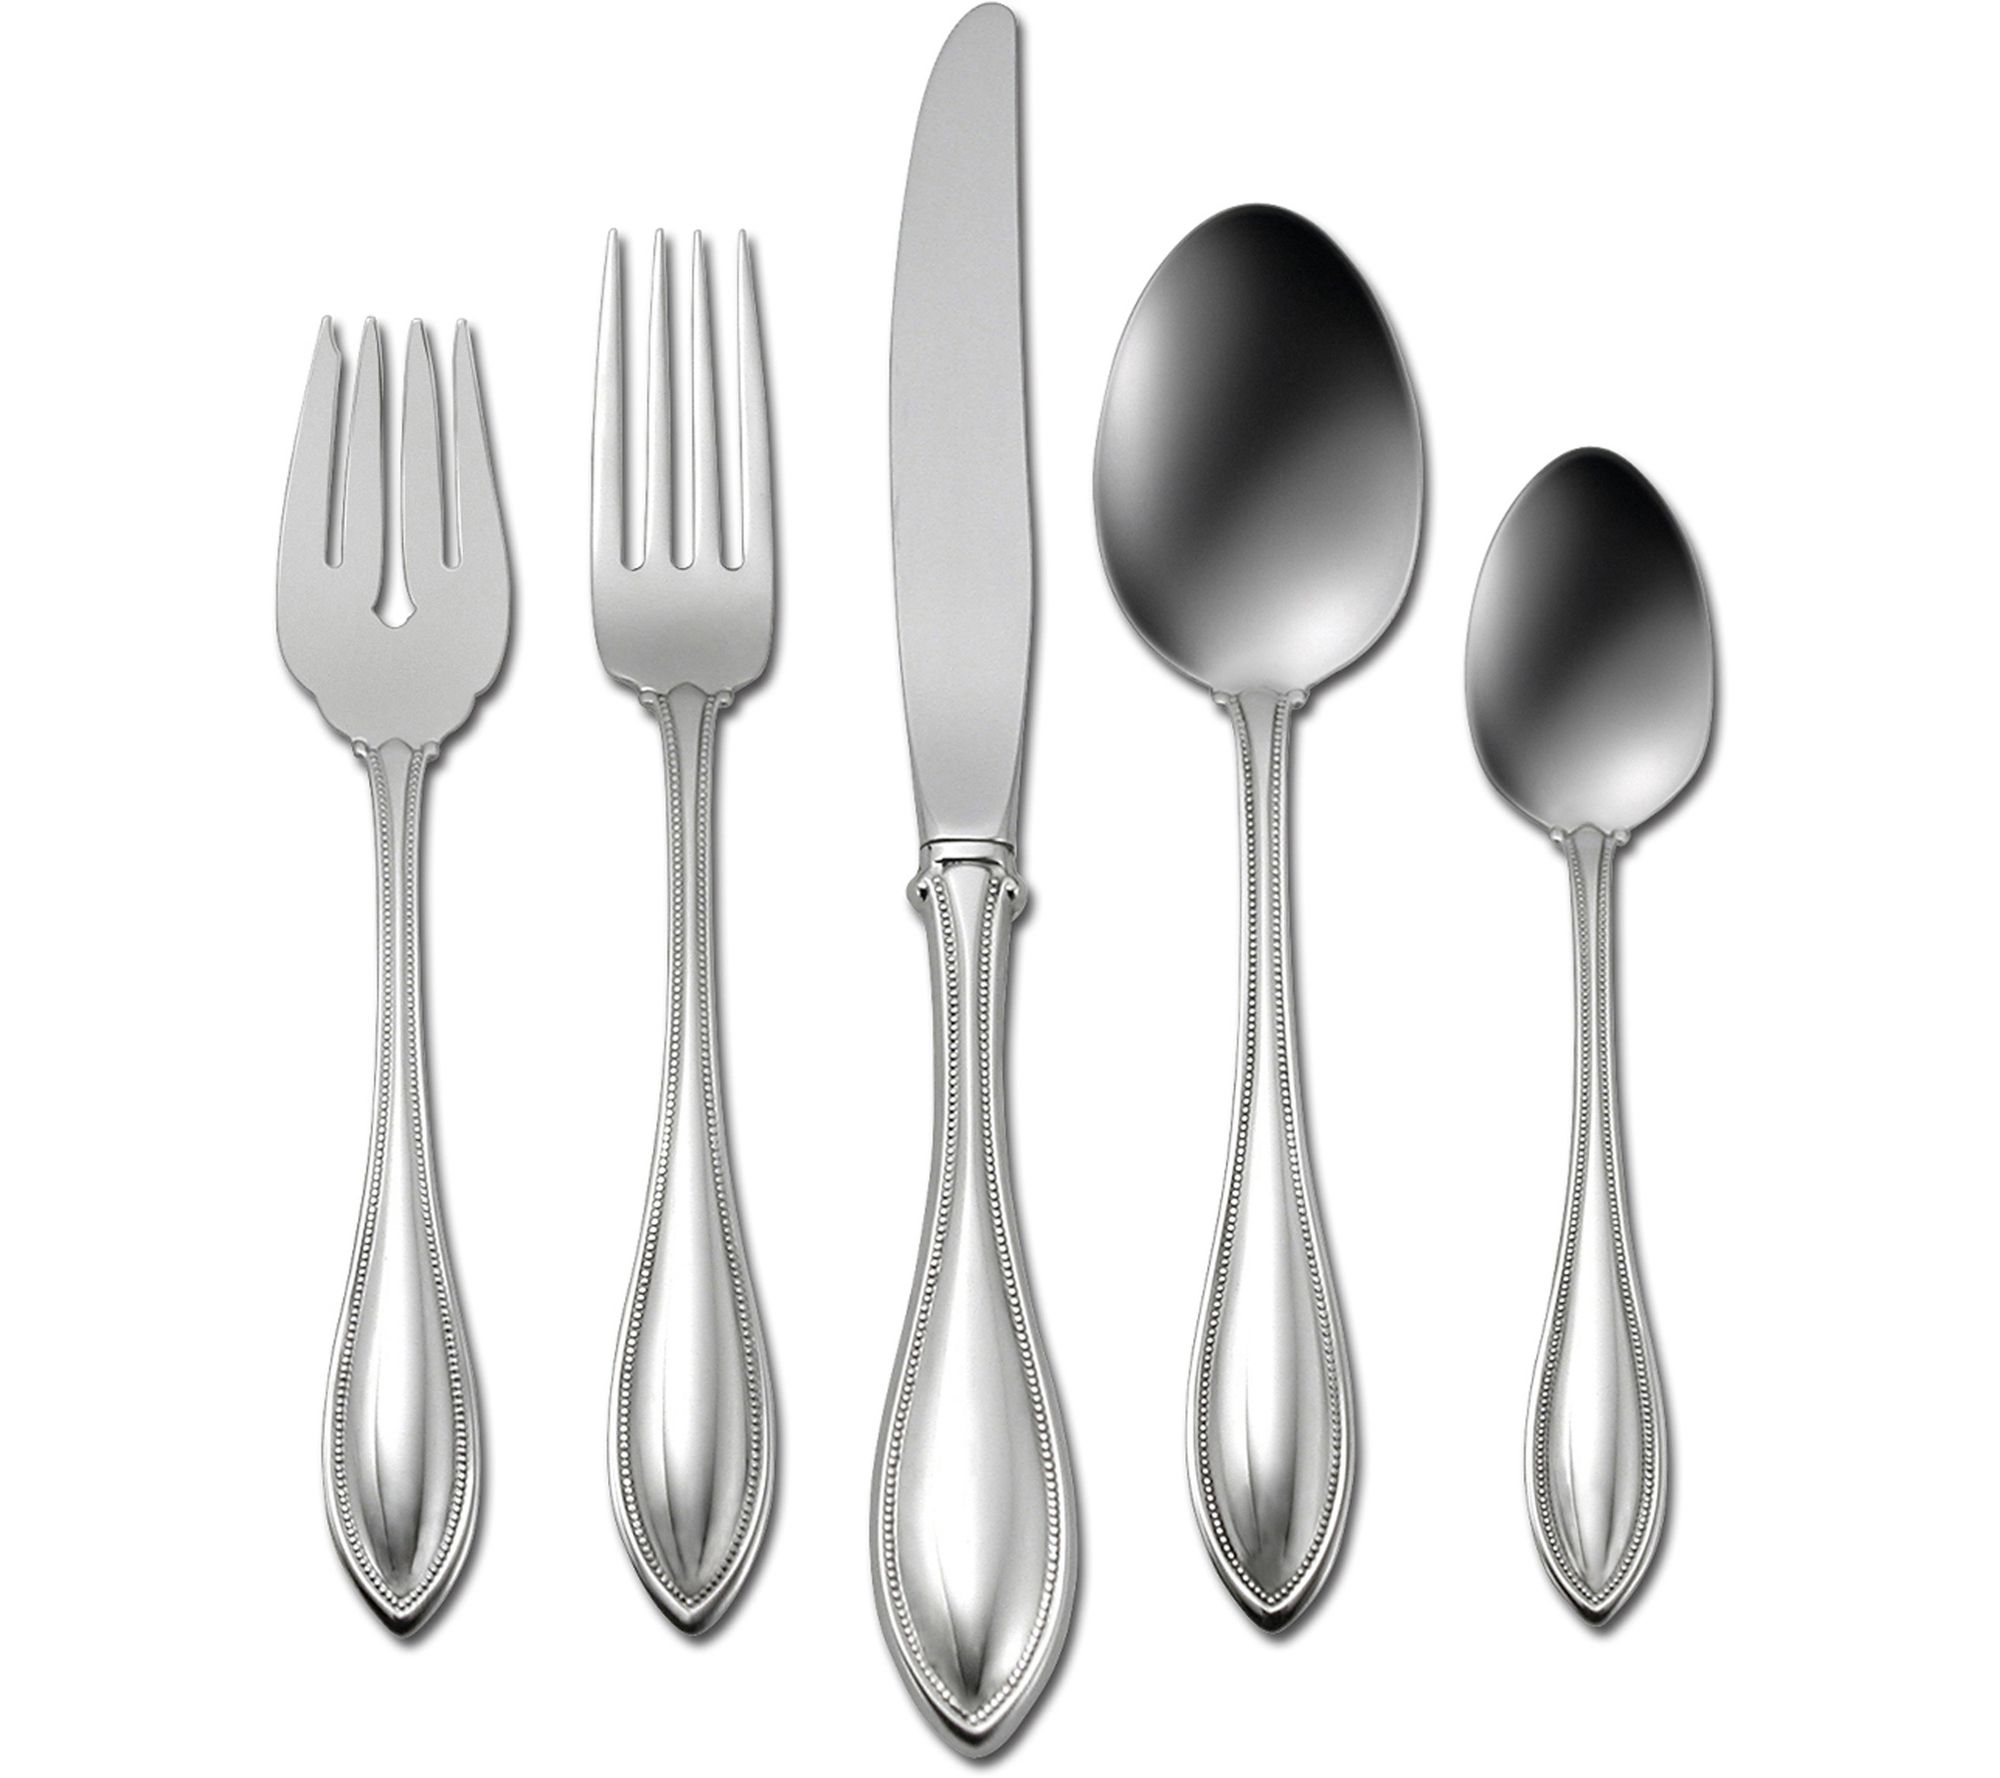 Best Deal On Silverware Oneida American Harmony 45 Piece Flatware Set Qvc